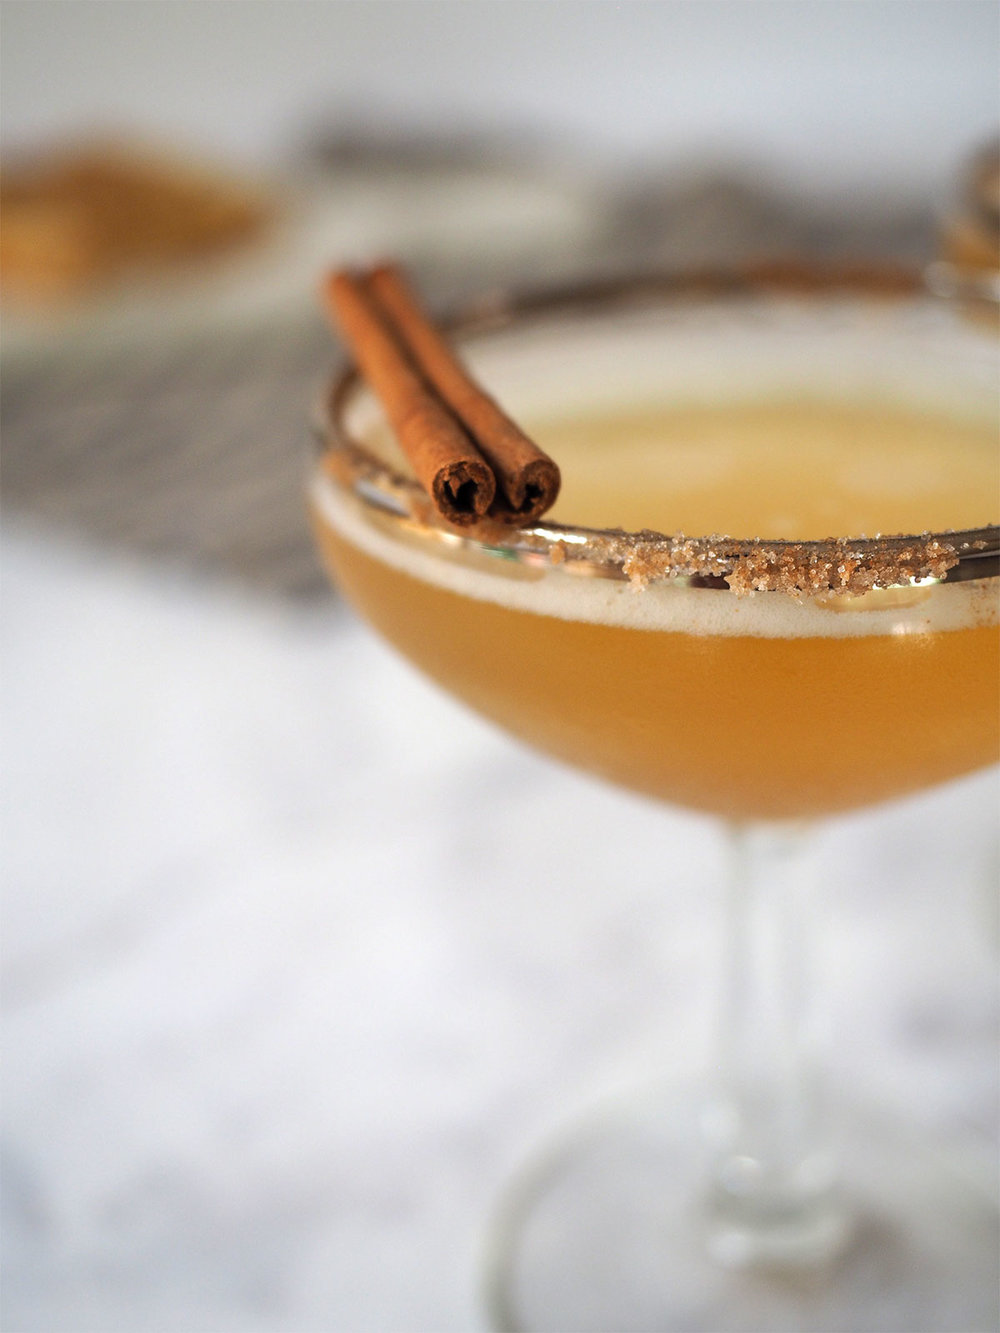 This cocktail combines all the magic of champagne with the warm, cozy flavors of fall. Just two ingredients — an easy-to-make apple shrub infused with chai tea topped with champagne! Perfect for brunch or dessert.